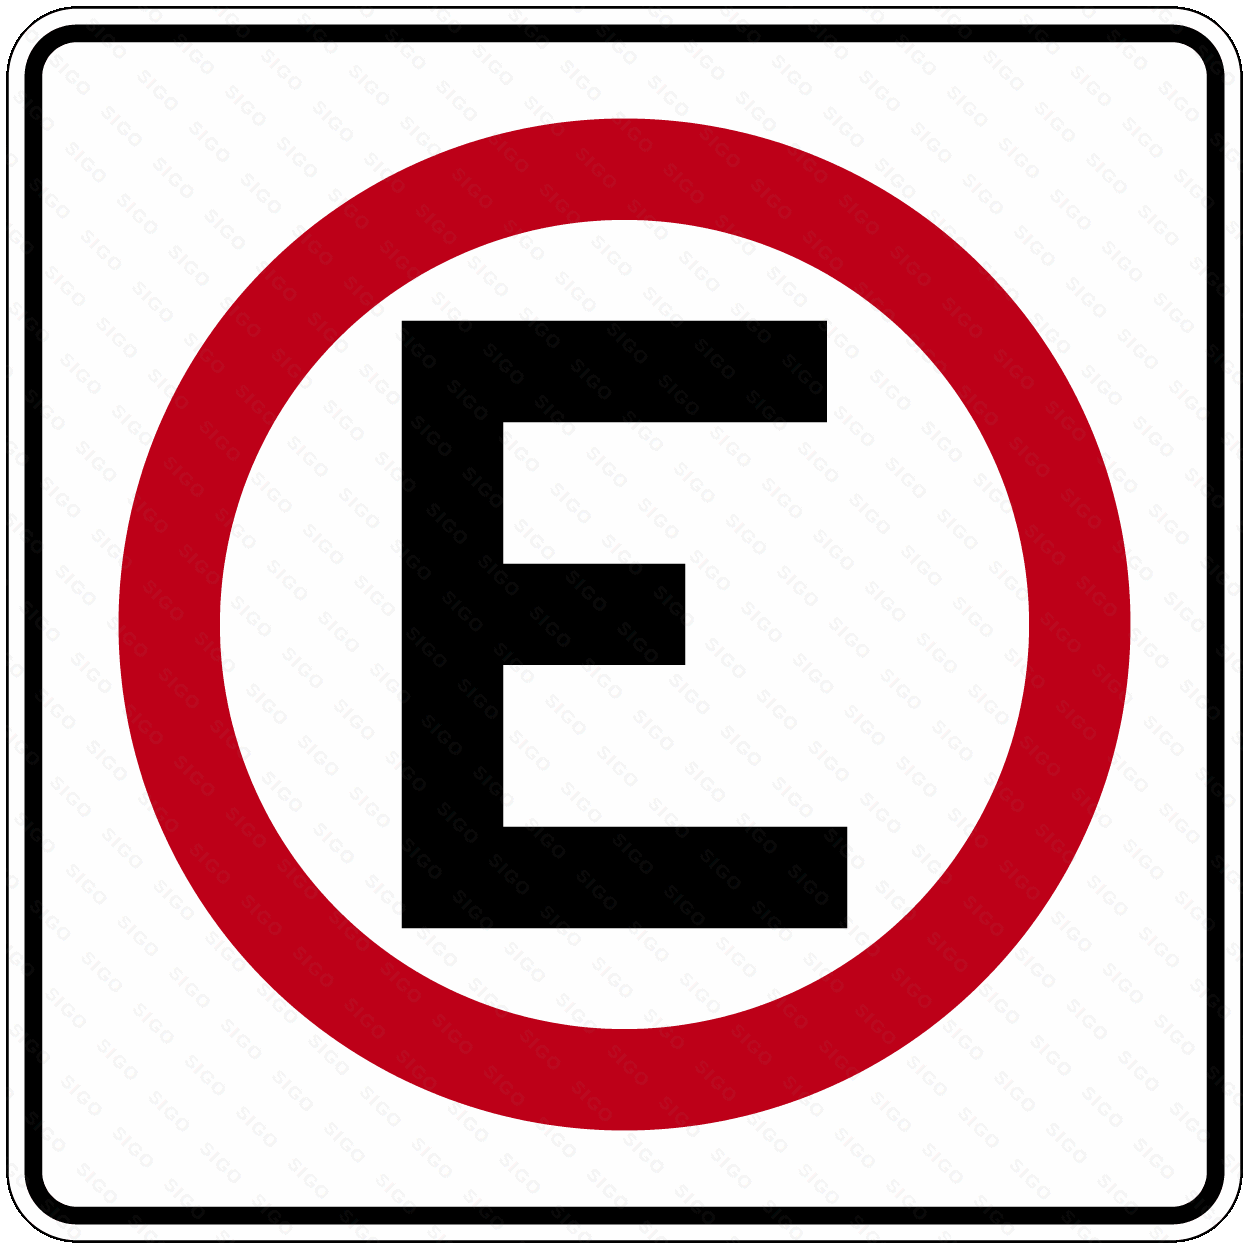 SR- (21) - Vial-Restrictiva- Estacionamiento